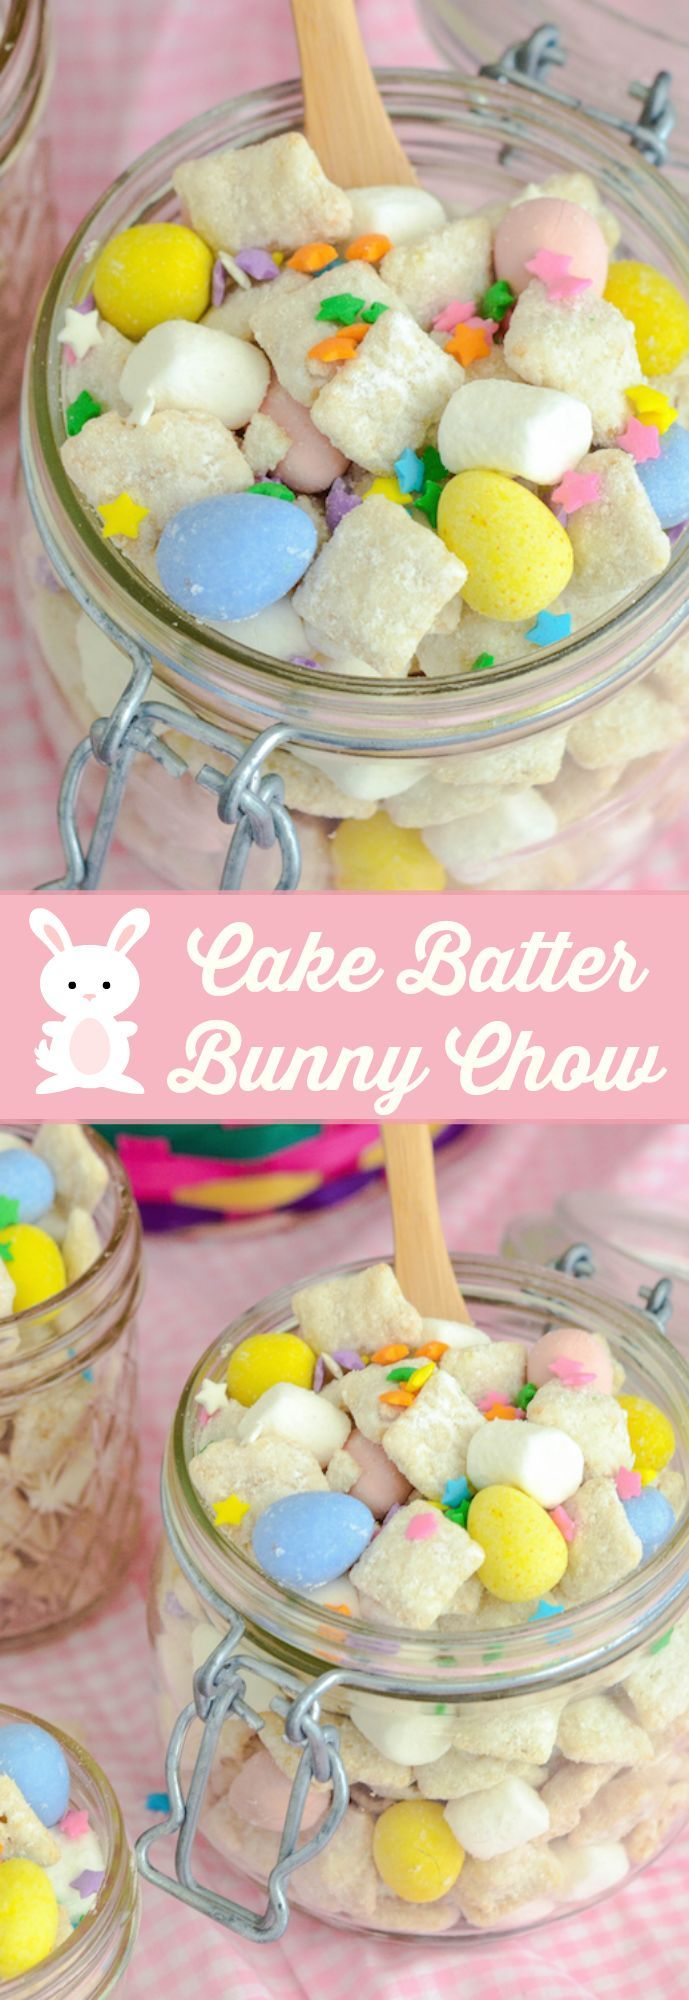 Cake Batter Bunny Chow!